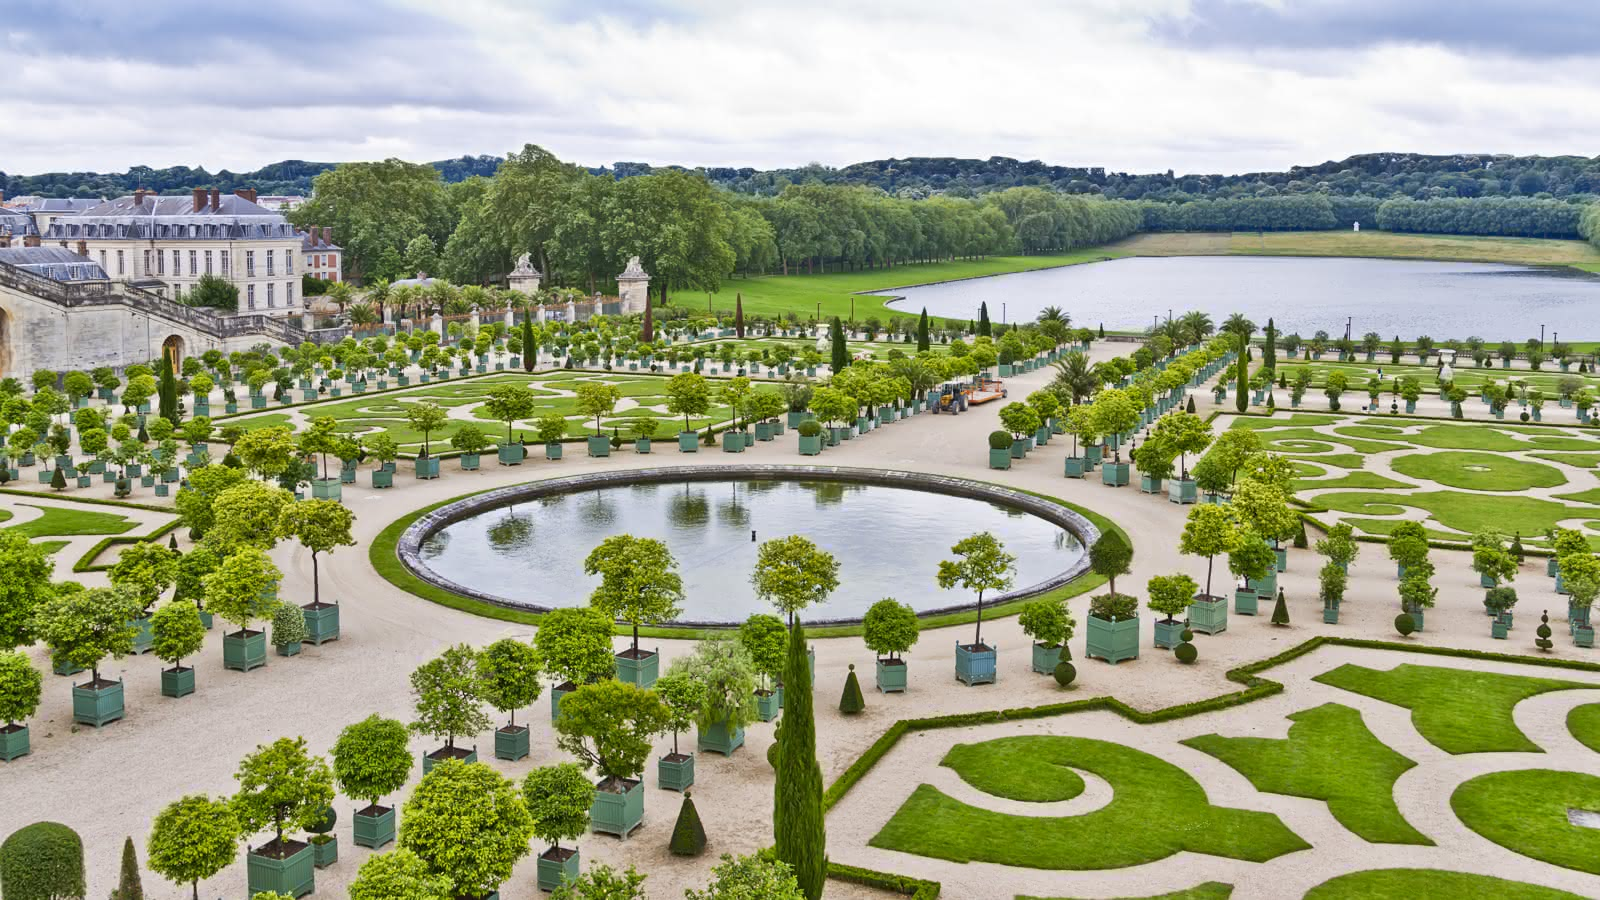 versailles gardens tour from paris